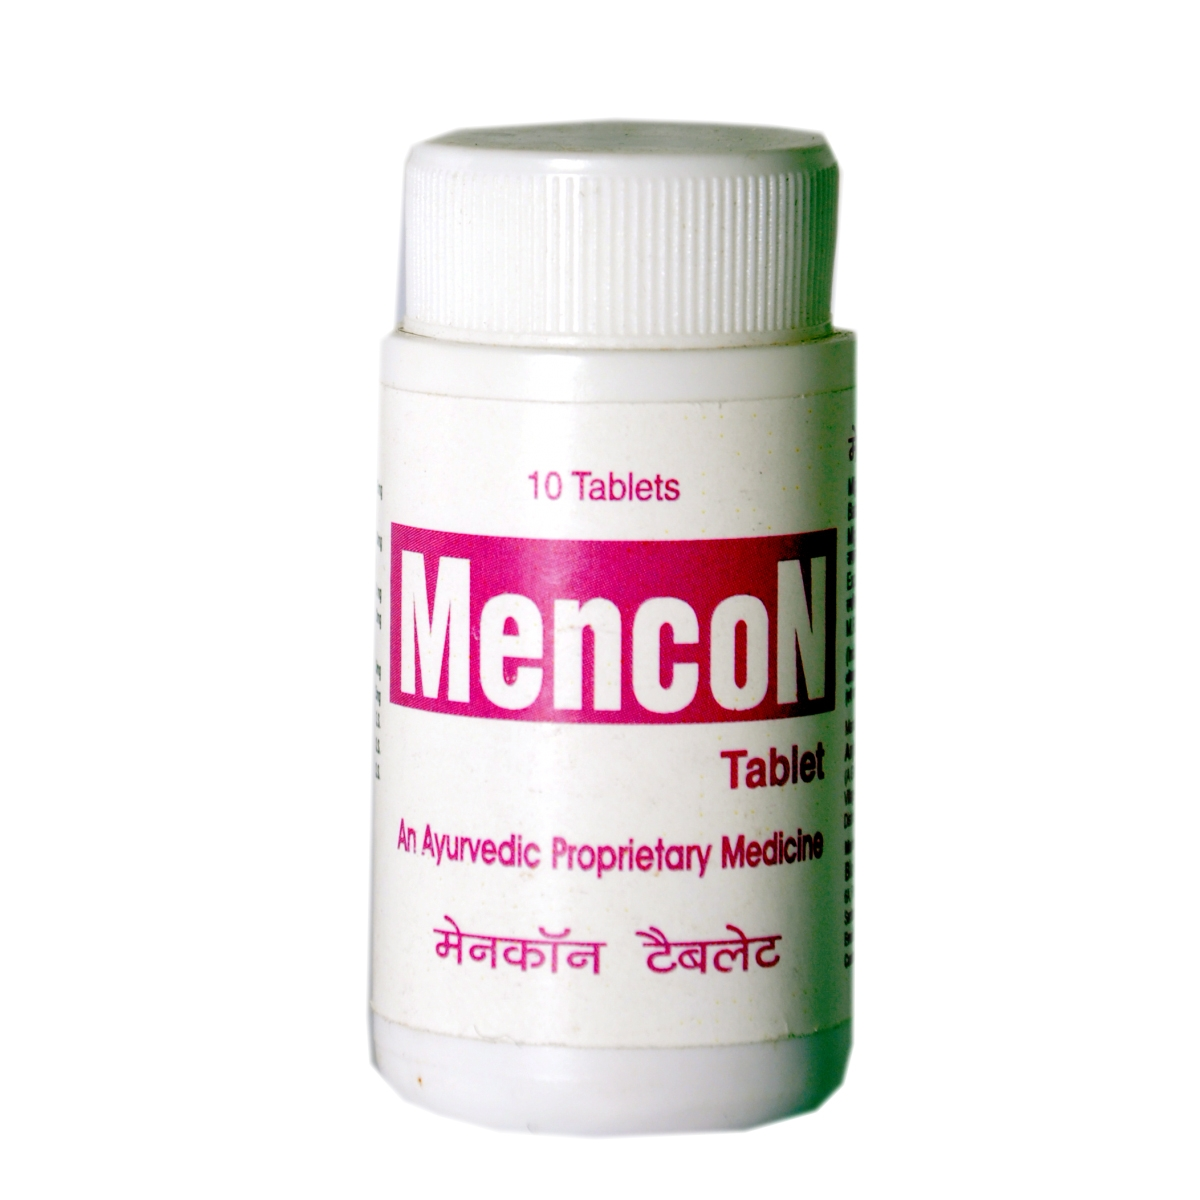 Mencon Tablet In Erode